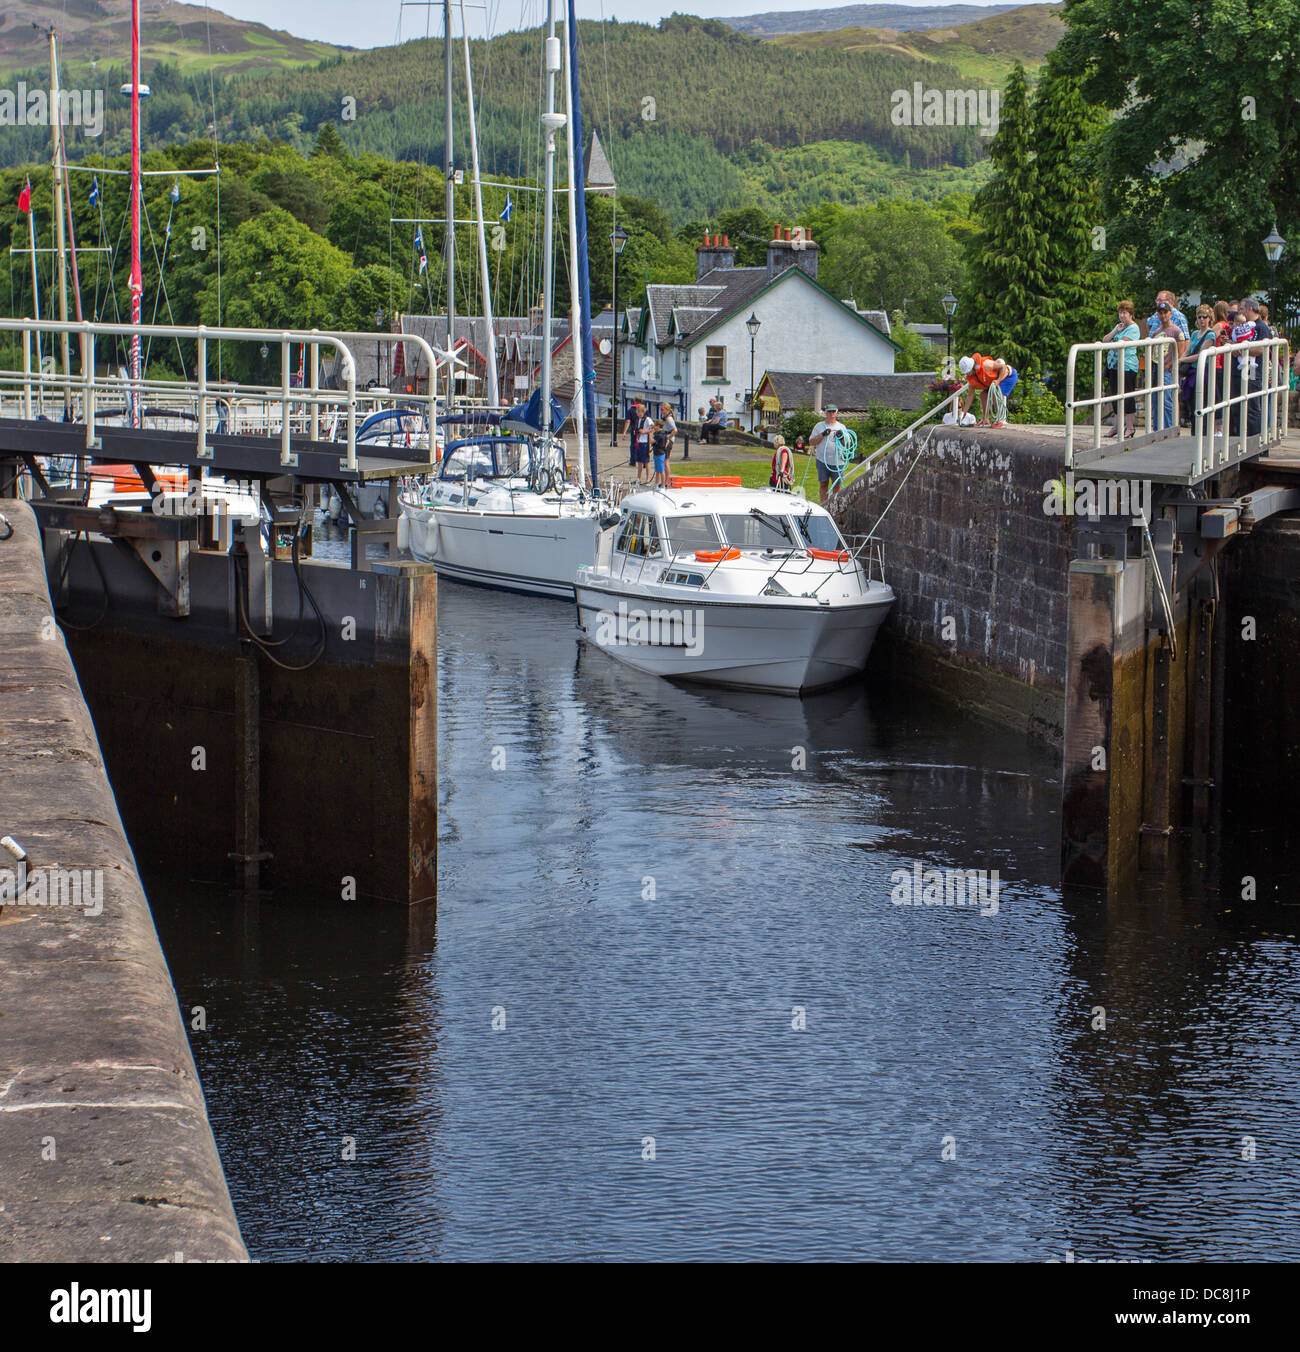 LOCK GATES OPENING ON THE CALEDONIAN CANAL AT FORT AUGUSTUS LOCH NESS SCOTLAND - Stock Image